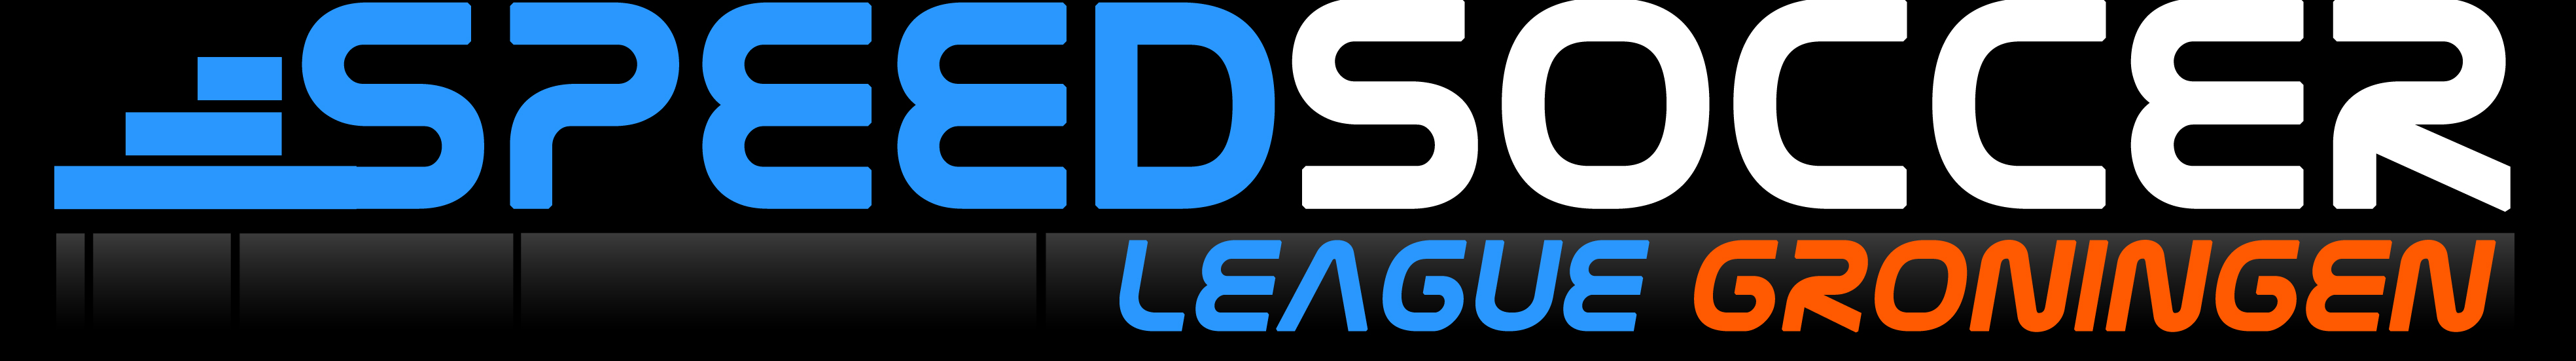 Speedsoccer league logo